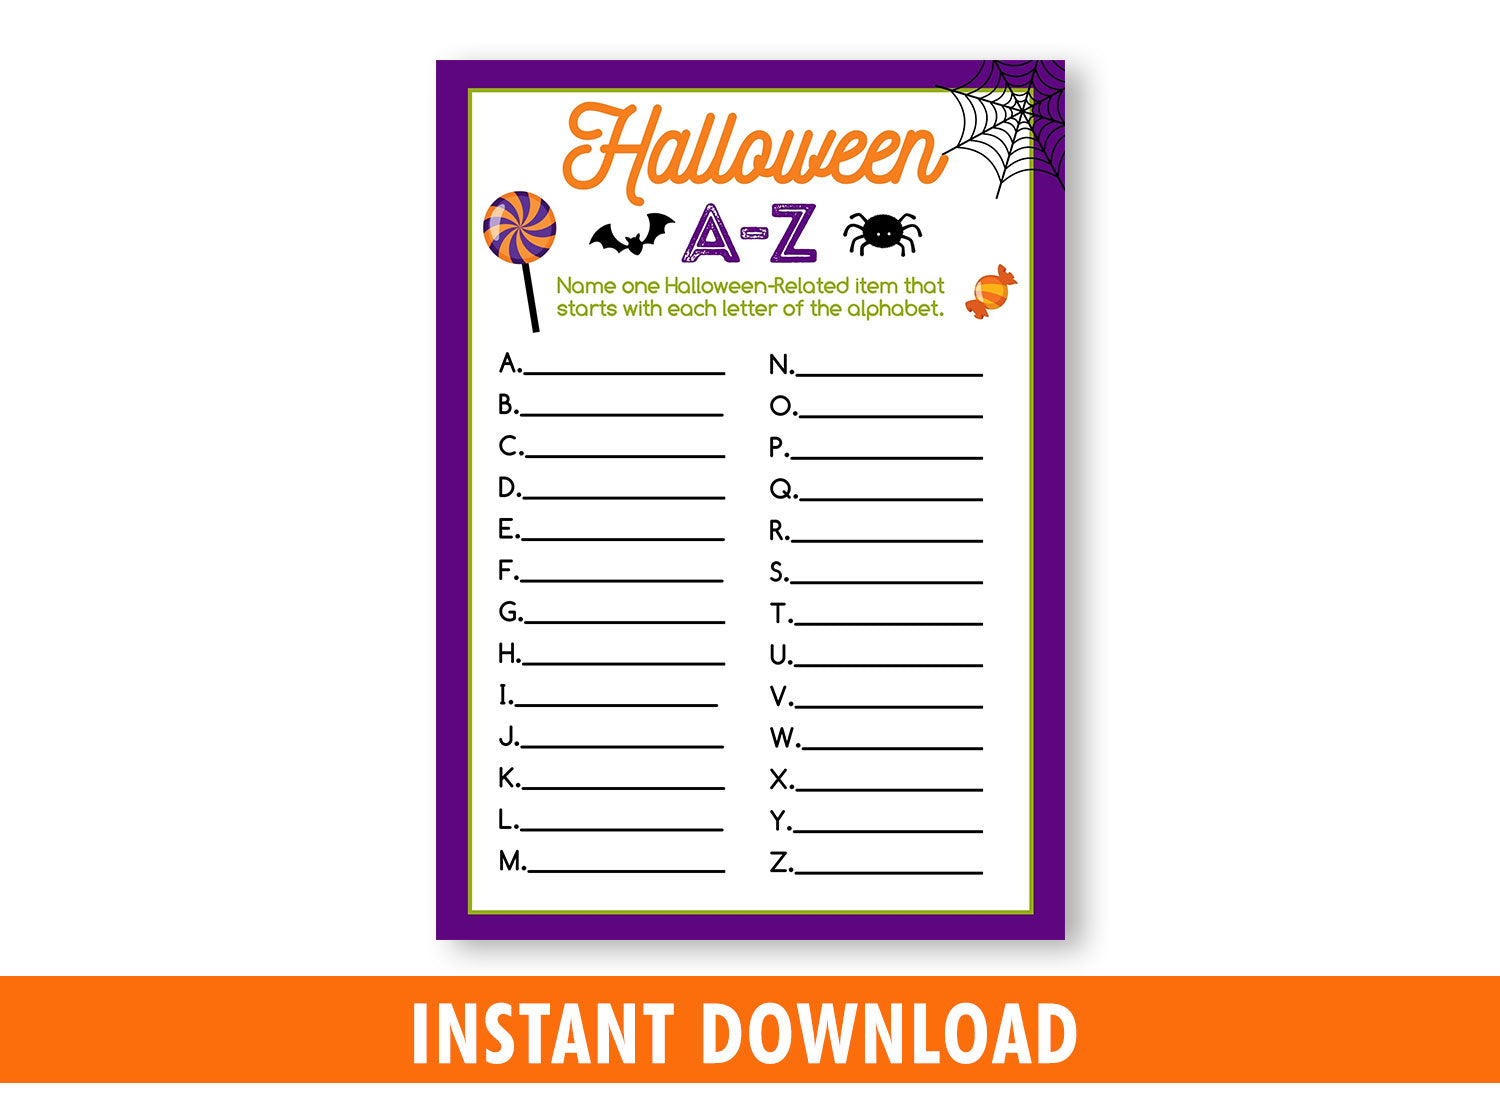 Halloween Scattergories Printable Game for Kids, A to Z Classroom Games and Activities, INSTANT DOWNLOAD - TitaTipsPrintables